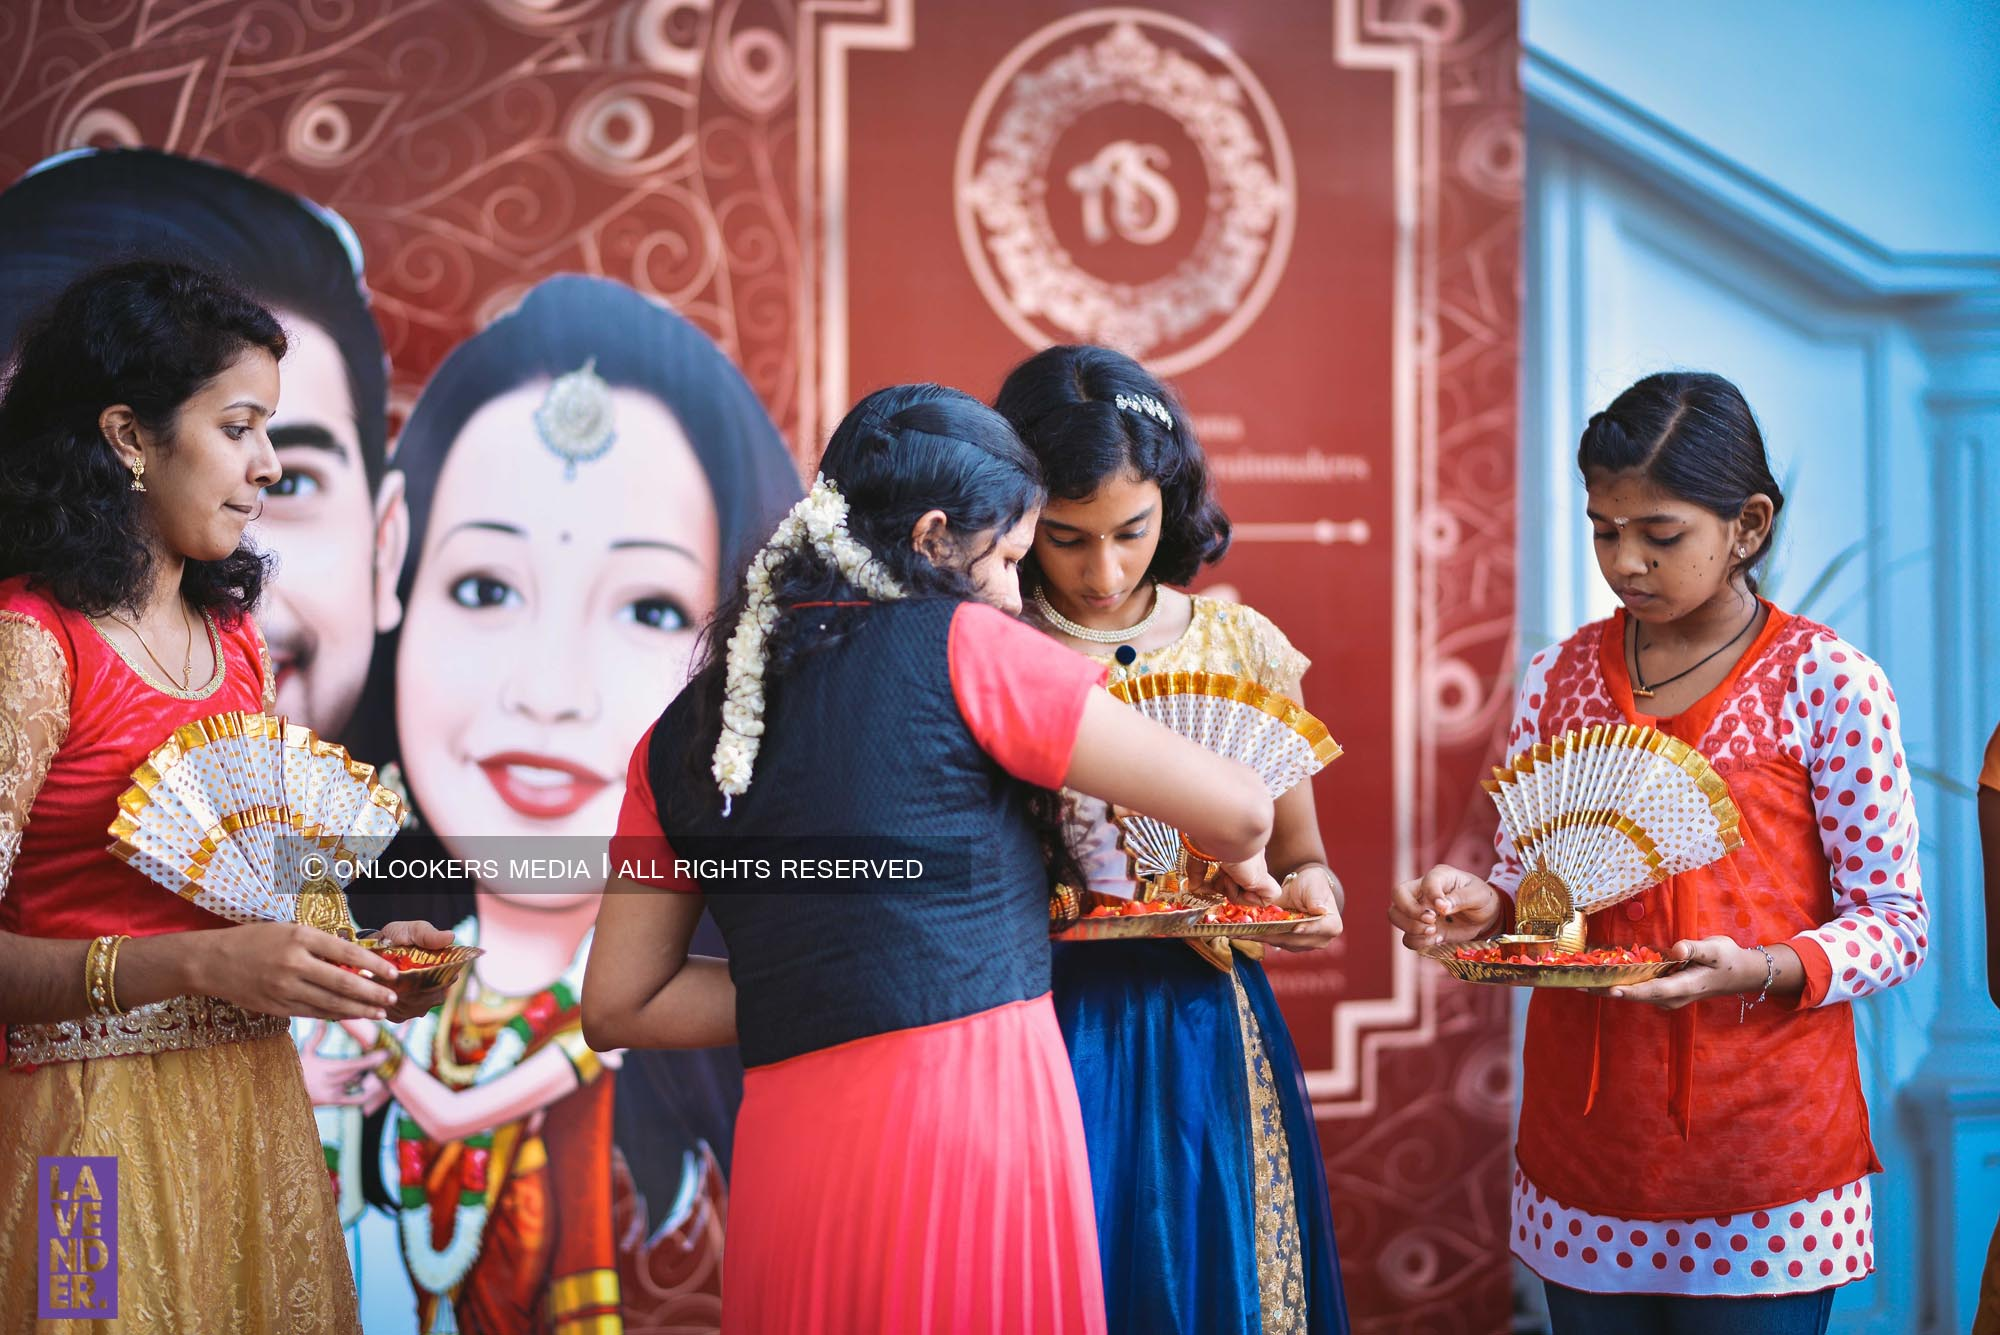 http://onlookersmedia.in/wp-content/uploads/2018/05/sreejith-vijay-wedding-stills-images-6.jpg